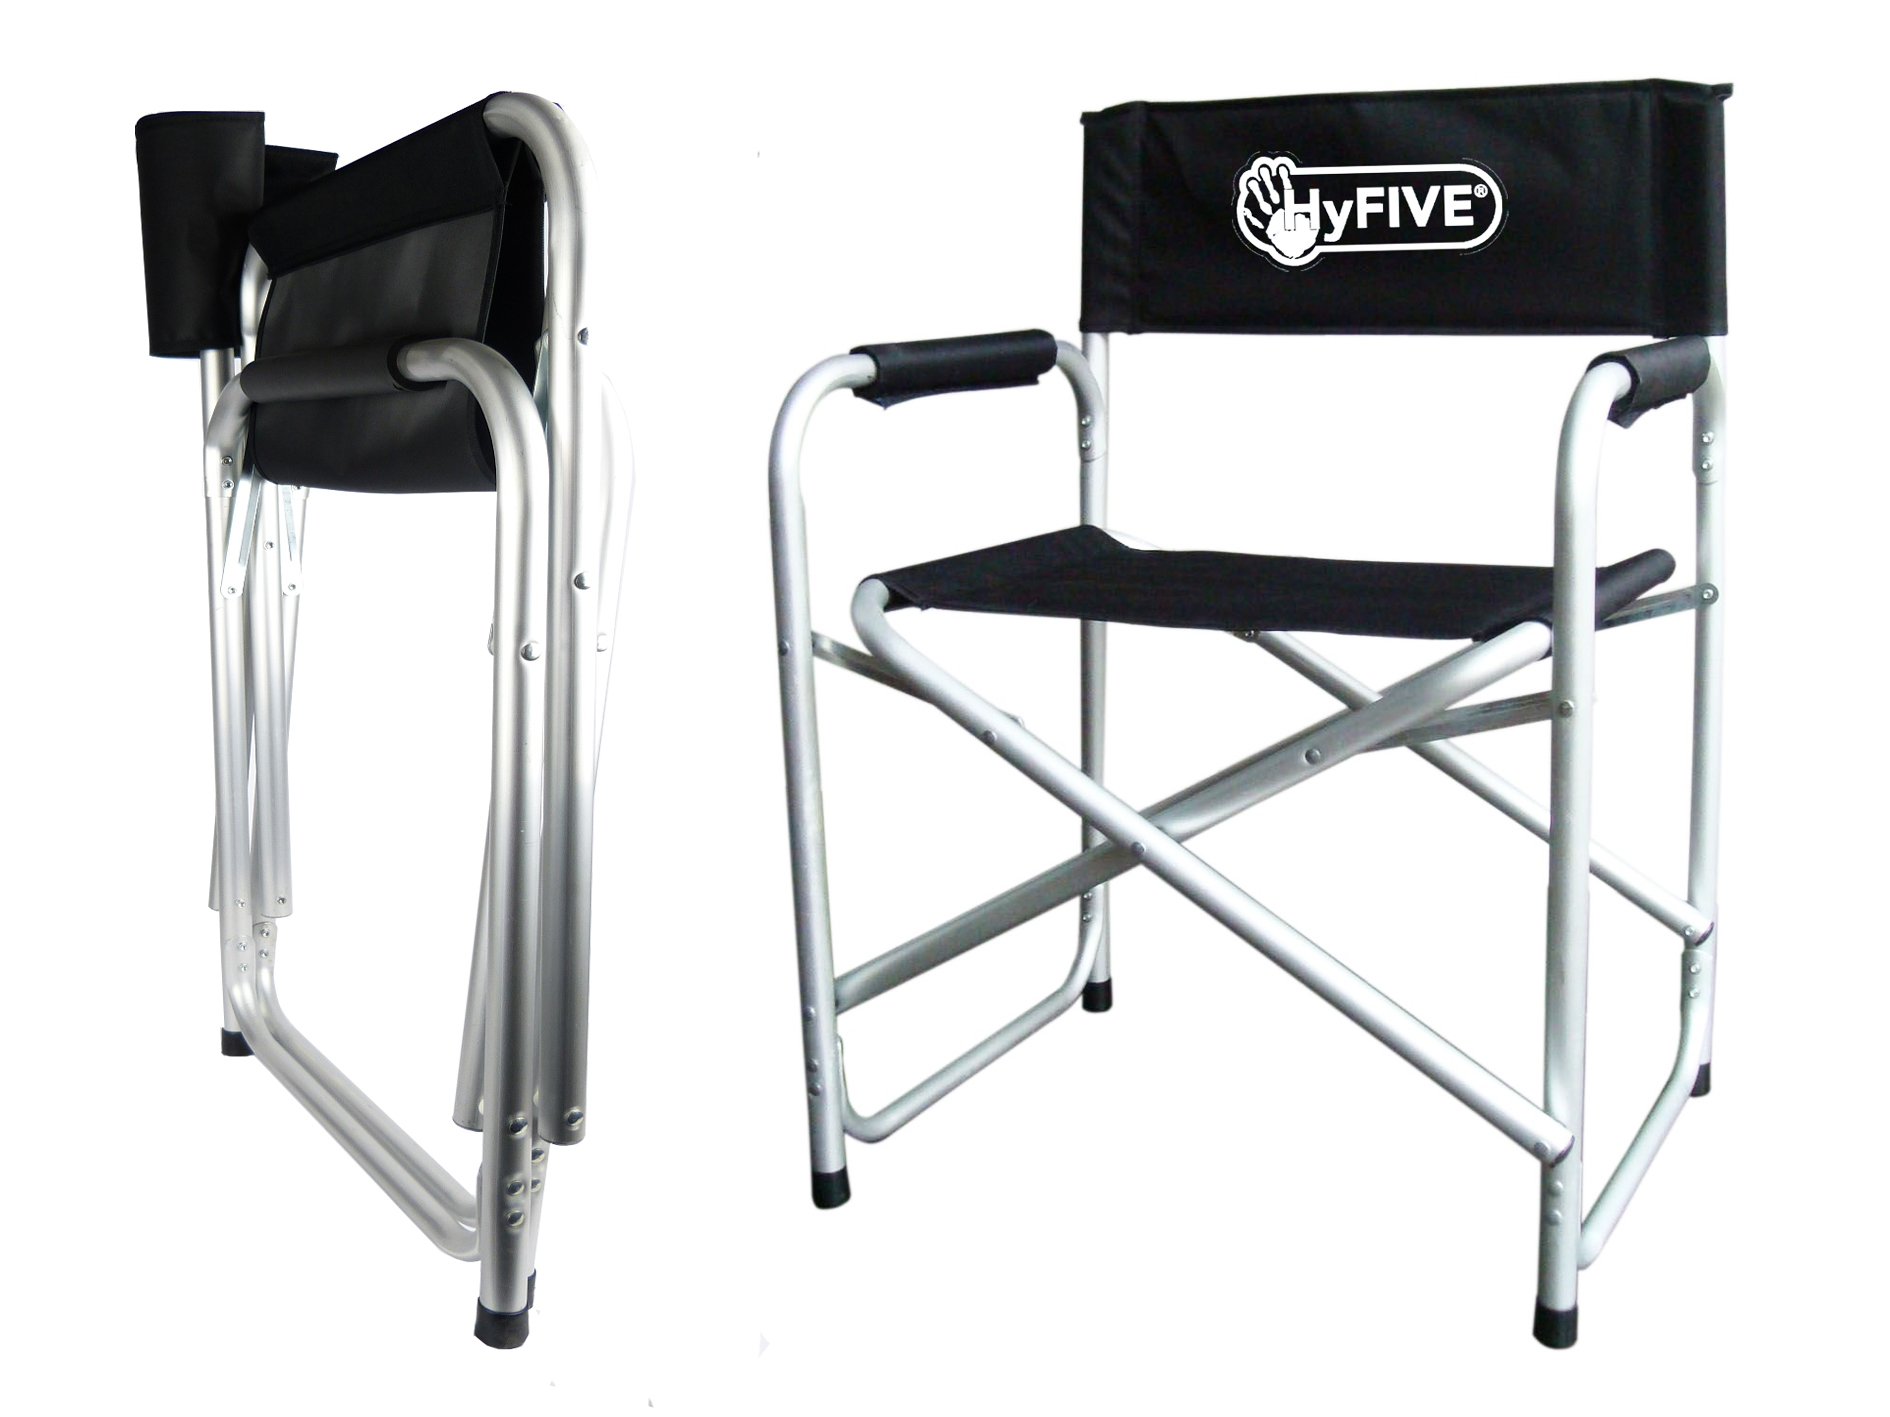 Hyfive Directors Chair Aluminium Folding Camping Seat With Arm